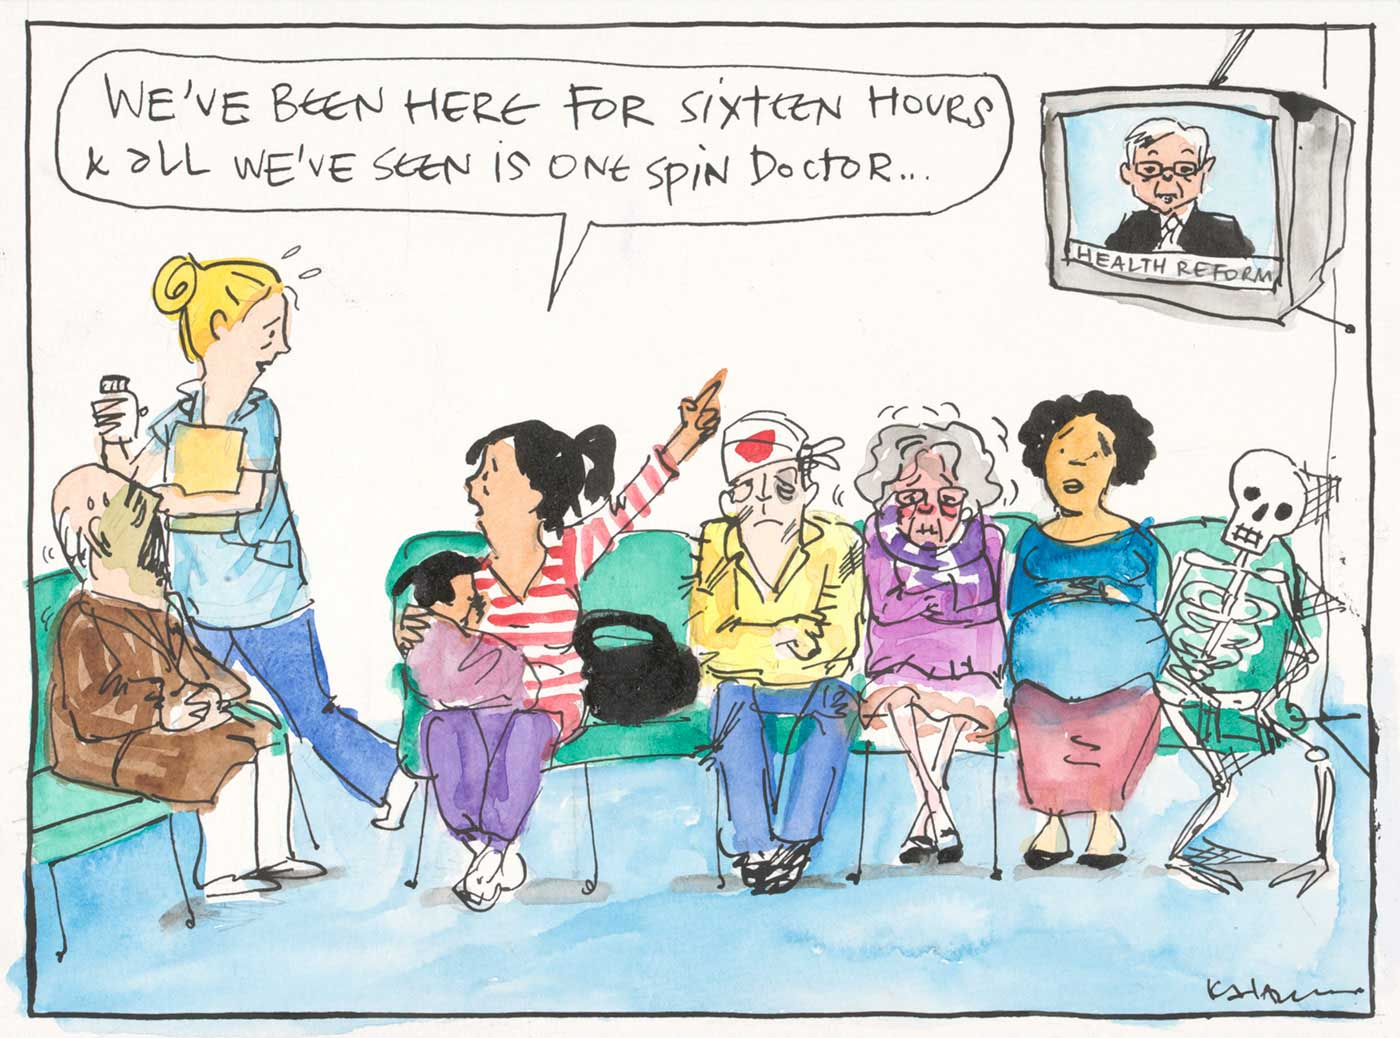 A colour cartoon depicting a hospital emergency department waiting room. Seven people are sitting on chairs: an elderly man, a woman with a young child, a man with a bandaged head, an elderly woman, a pregnant woman and a skeleton with cobwebs. The woman with the child speaks to a passing hospital staff member. She says 'We've been here for sixteen hours and all we've seen is one spin doctor'. As she speaks she points to a TV in the upper right corner of the cartoon. On the TV is Kevin Rudd. Under his image are the words 'Health Reform'.  - click to view larger image